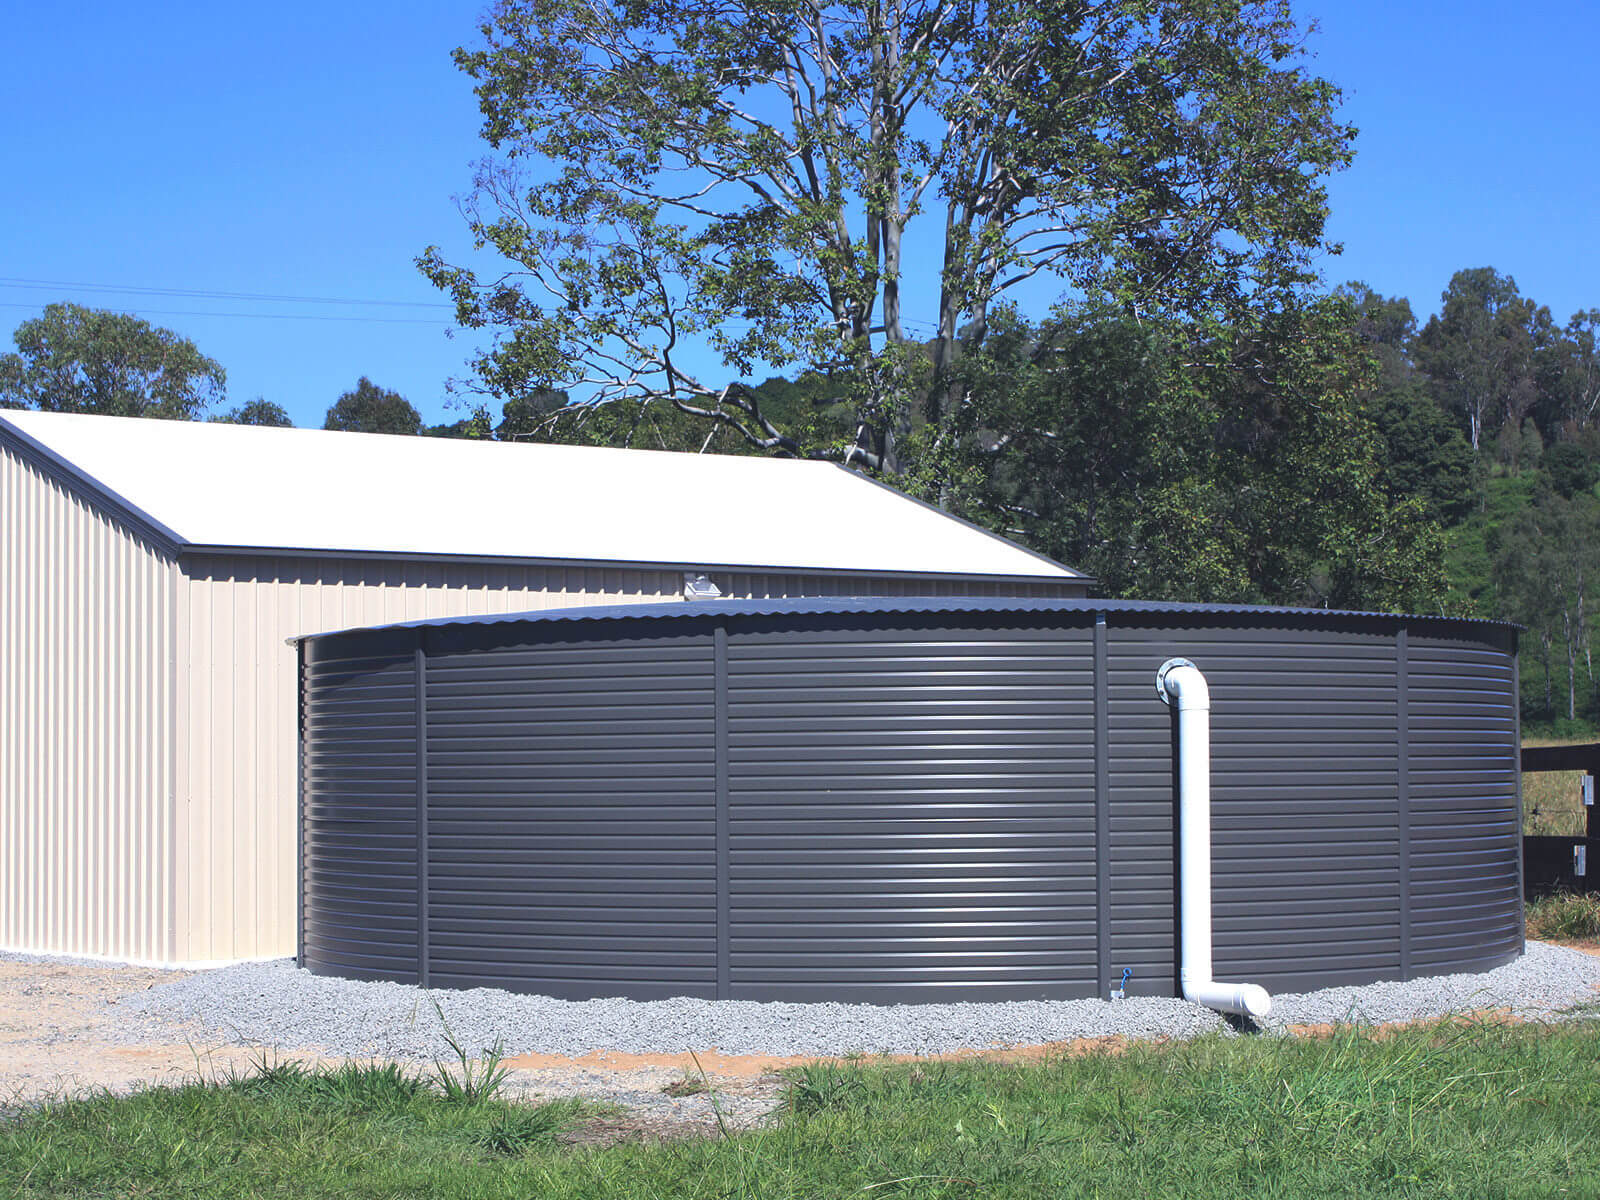 Huckleberry Tanks & Sheds - Steel Shed & Rain Water Storage Tanks